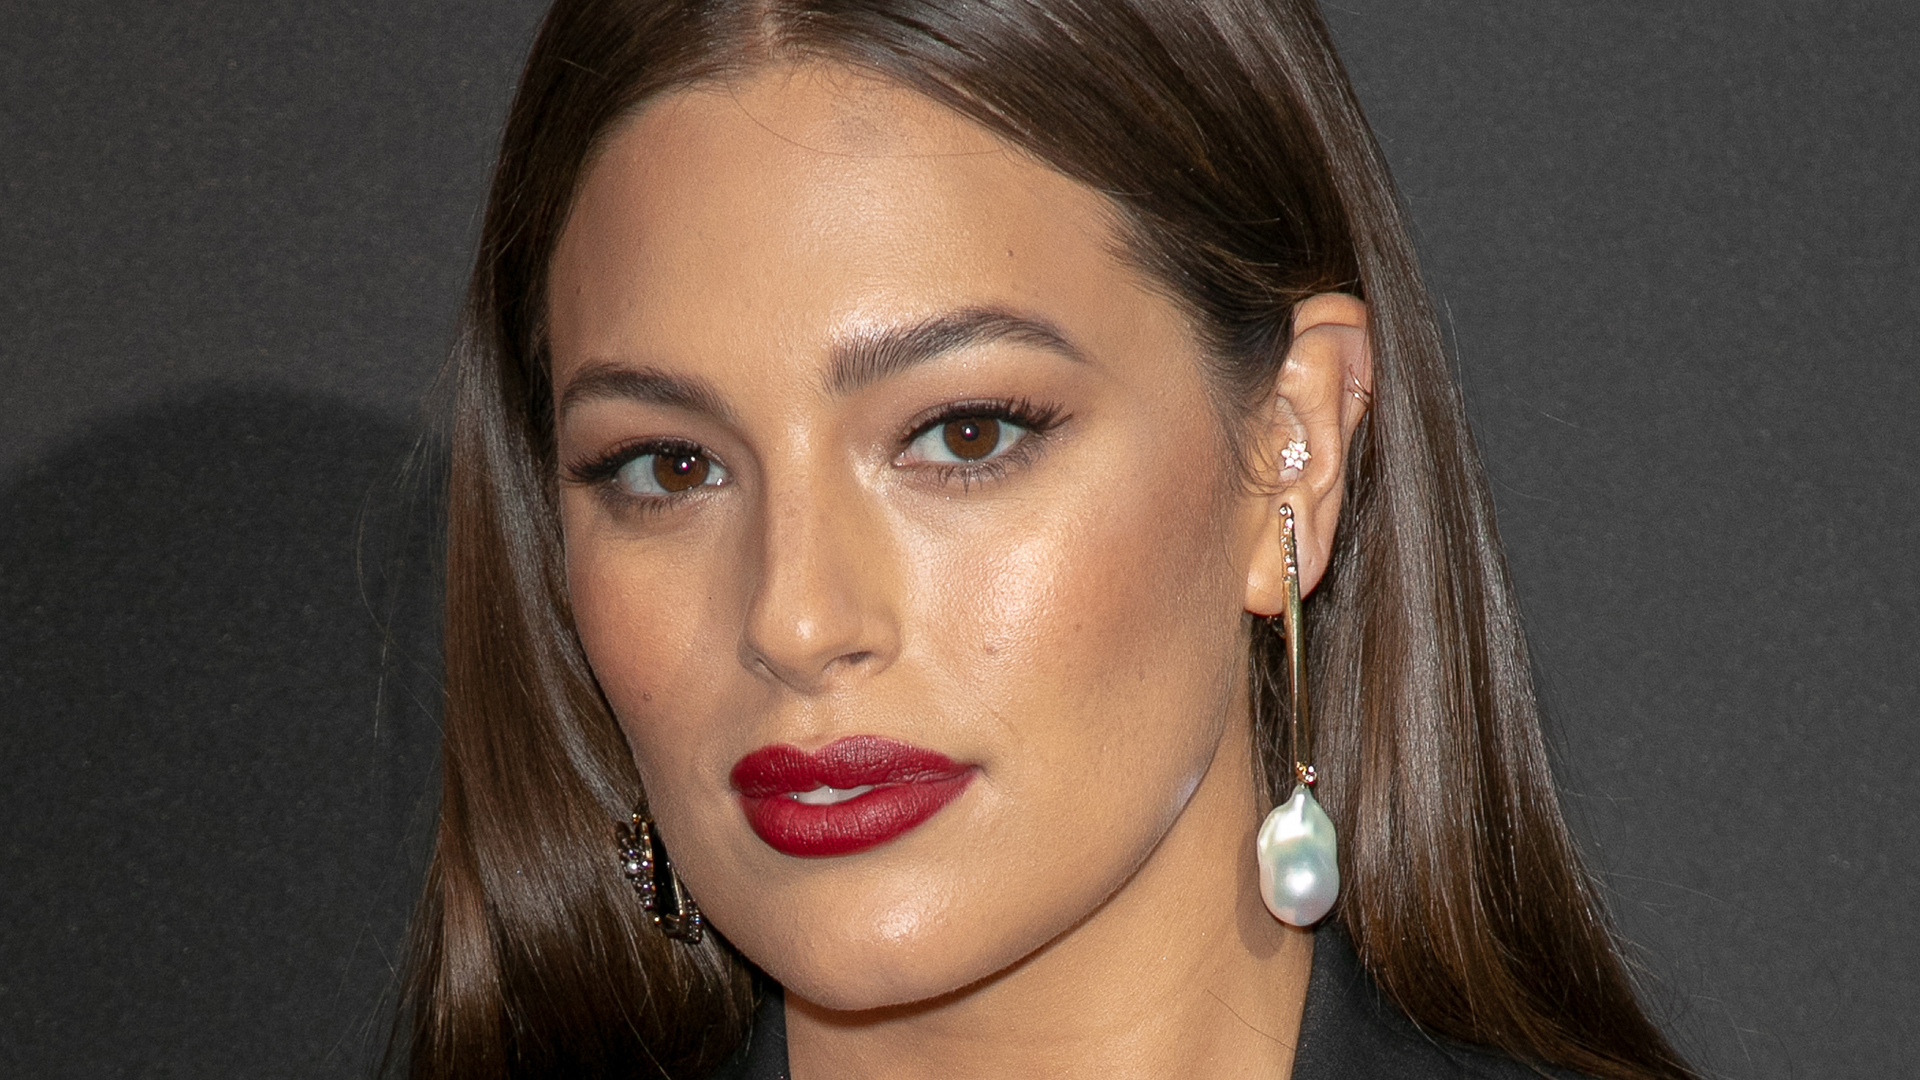 Ashley Graham's Lip Kit Is Back After Selling Out in 3 Hours